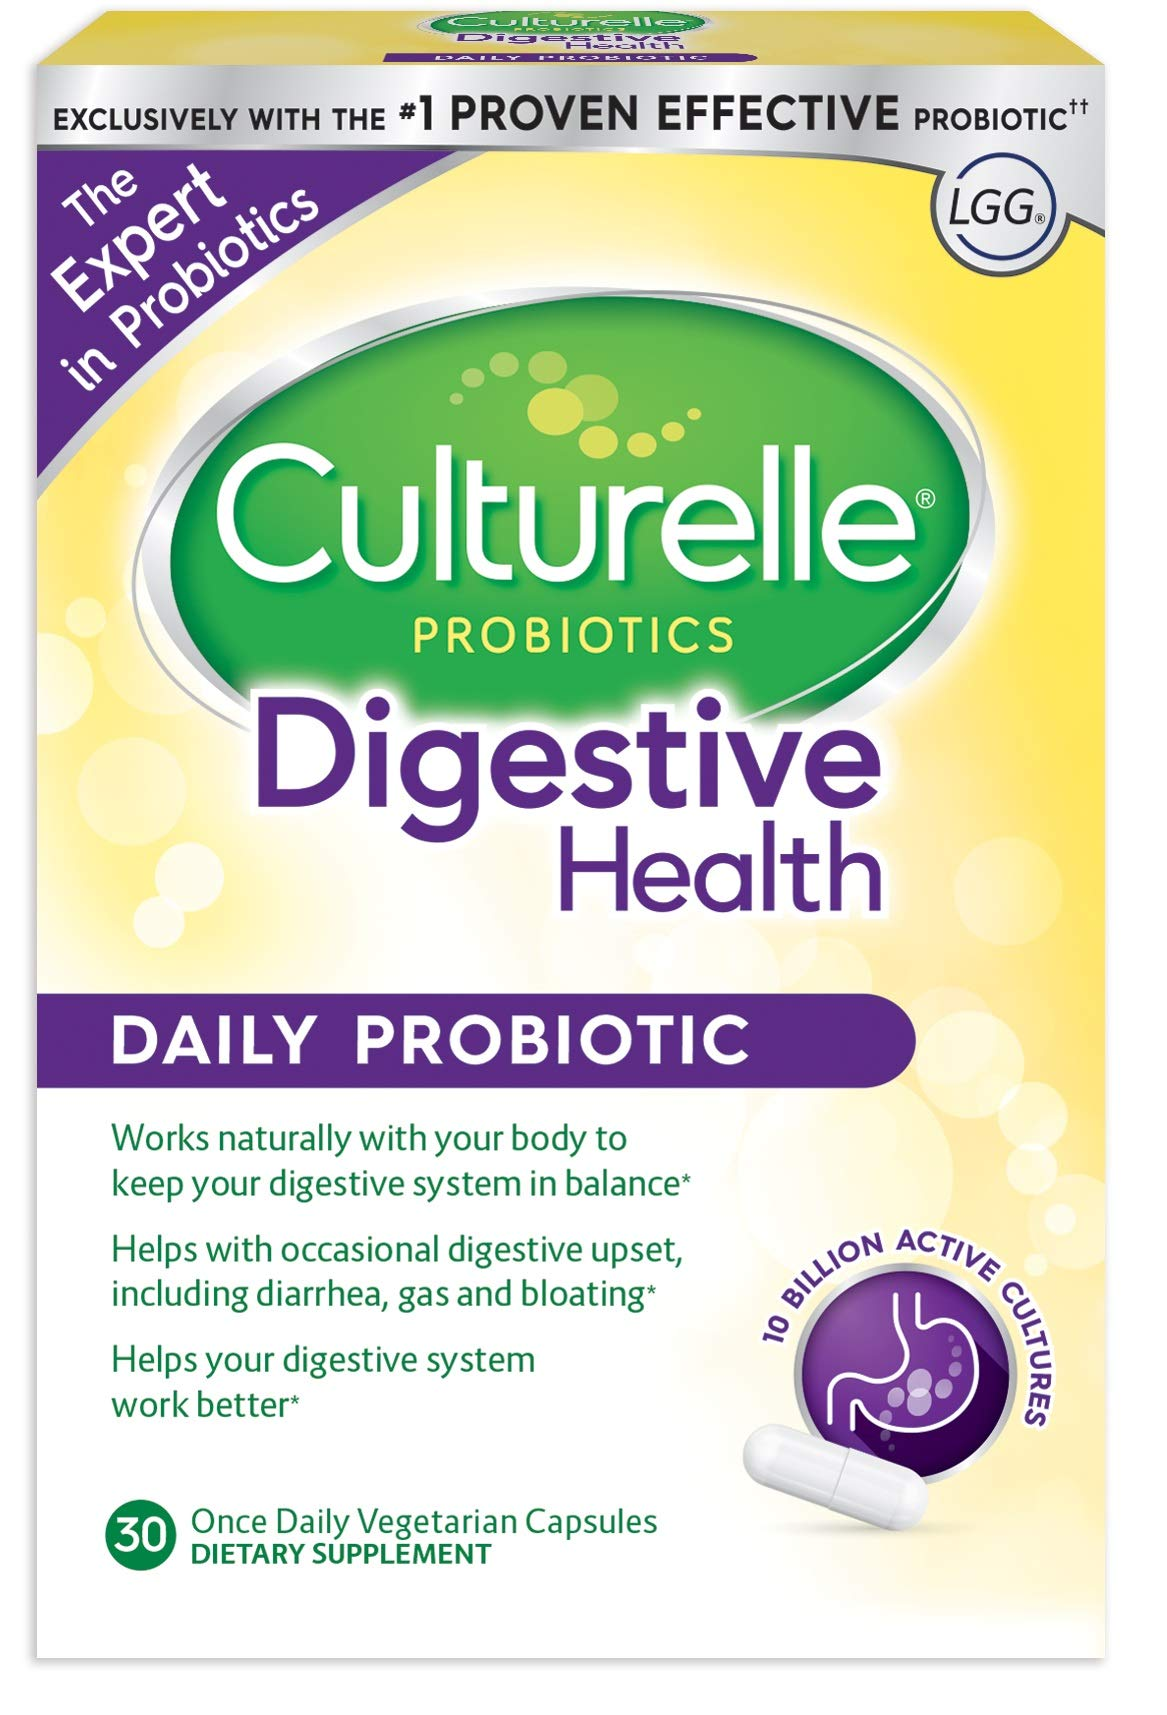 Culturelle Daily Probiotic, 30 count Digestive Health Capsules | Works Naturally with Your Body to Keep Digestive System in Balance* | With the #1 Proven Effective Probiotic